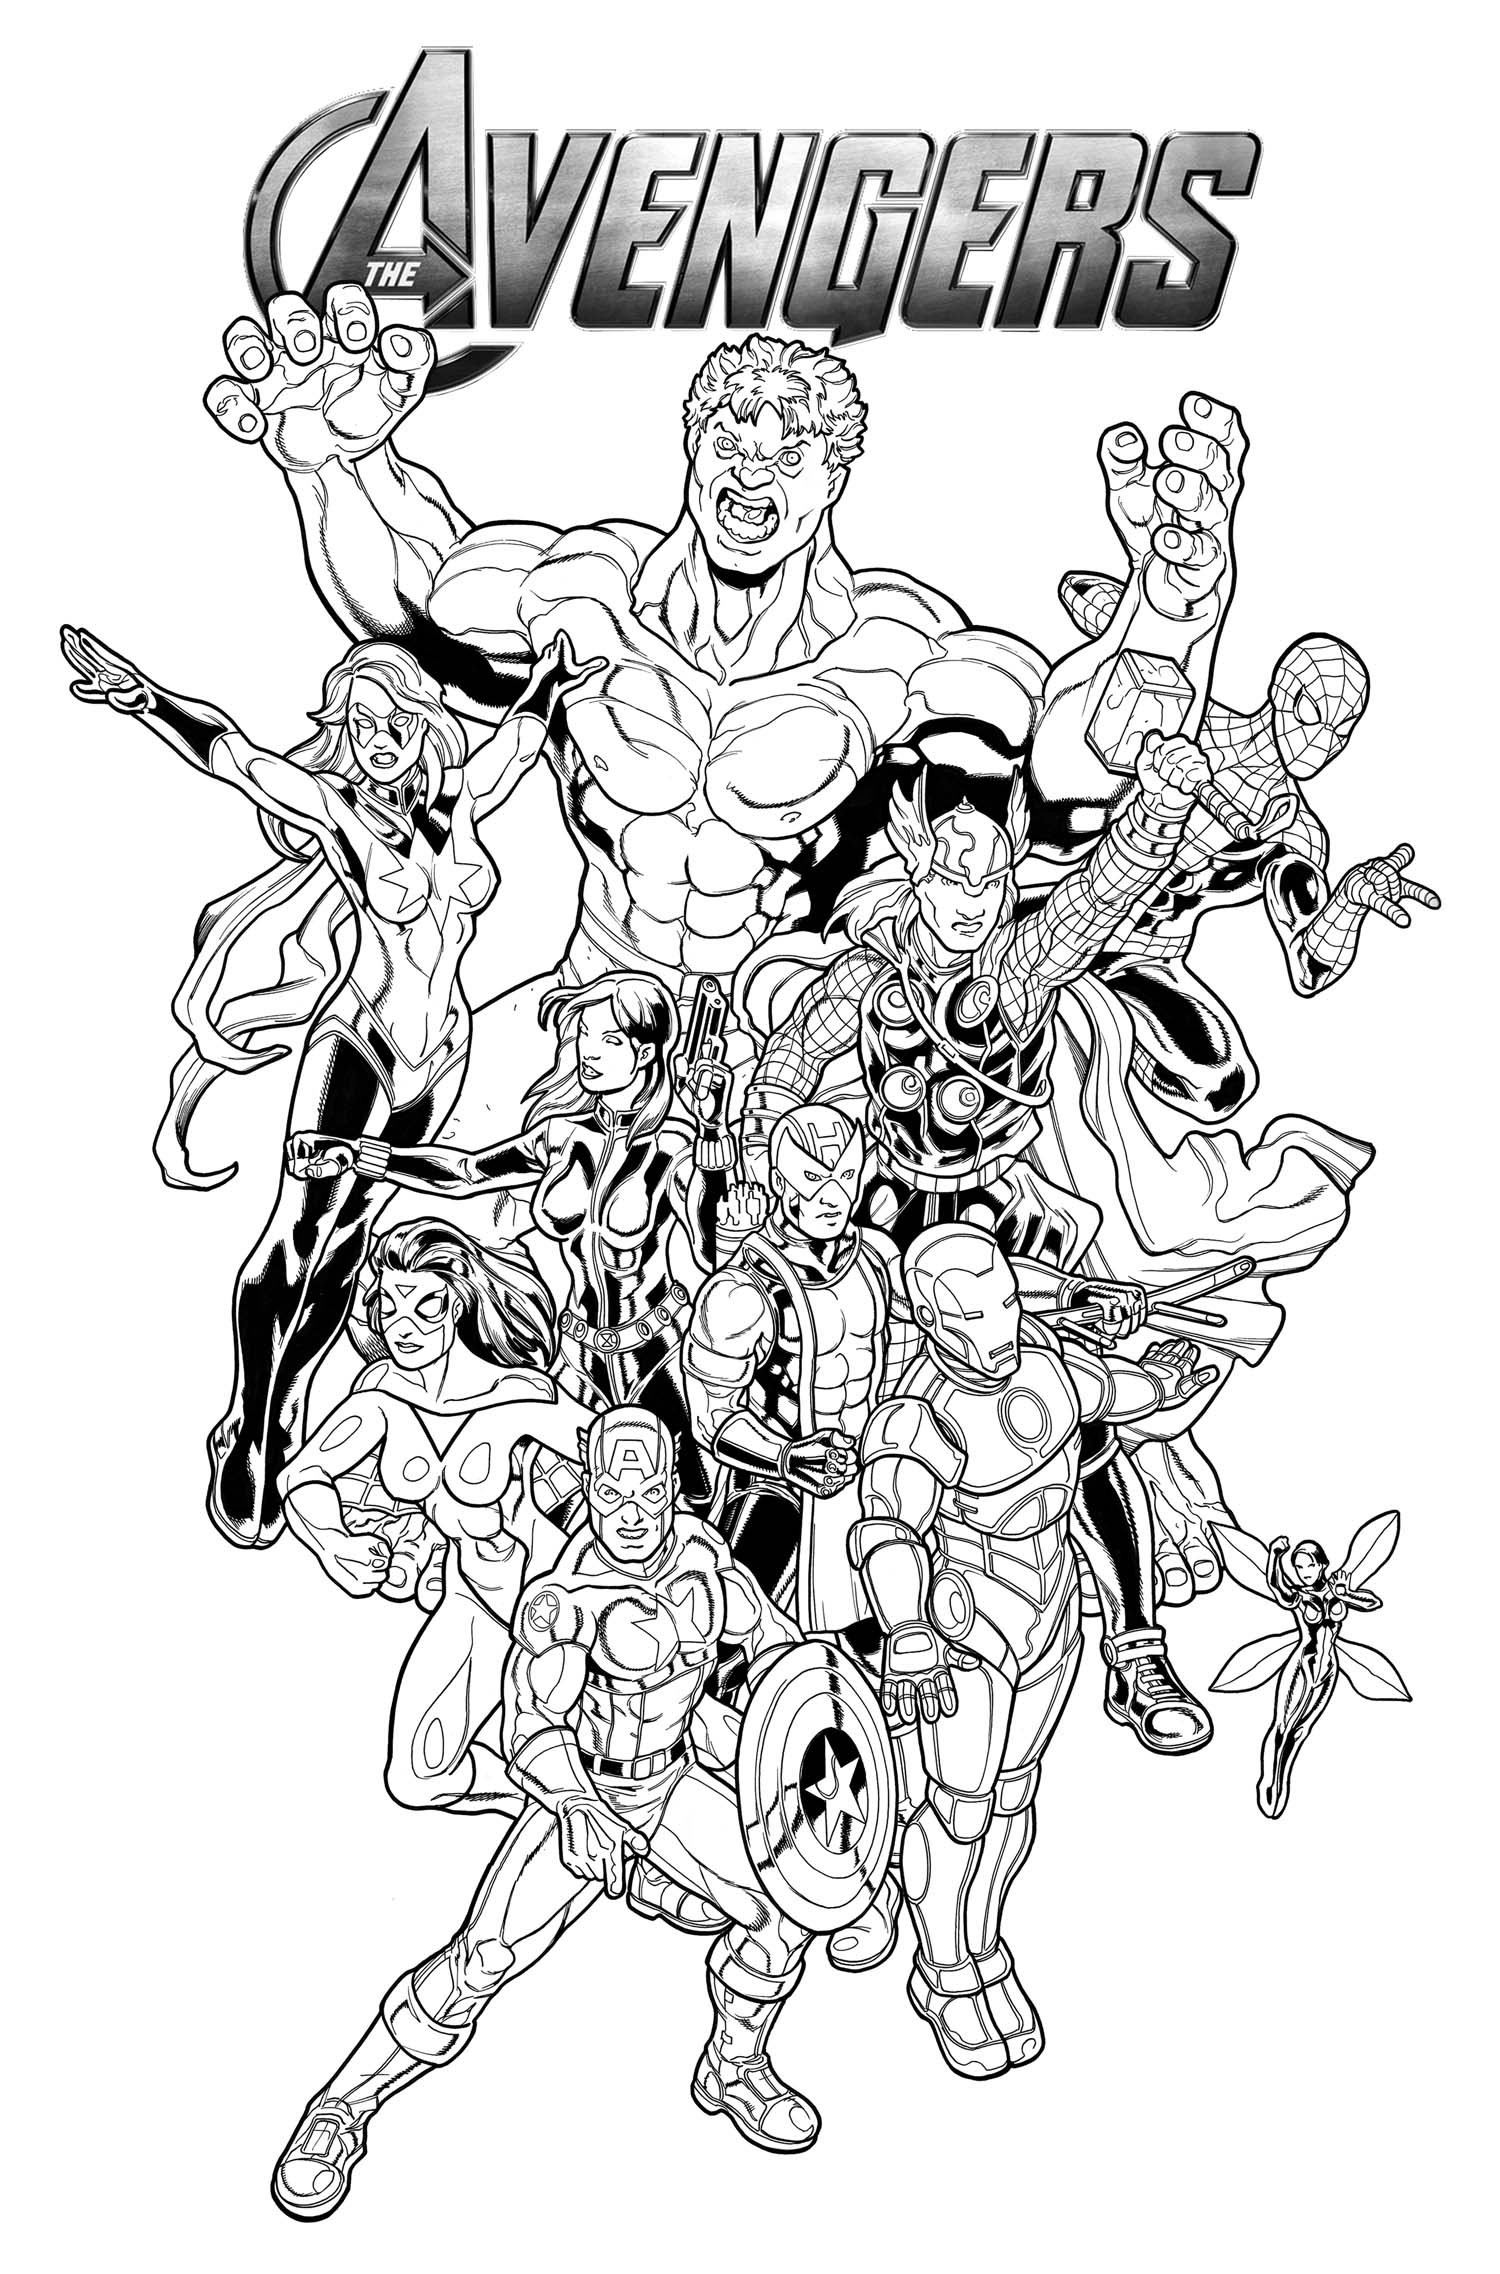 Avengers Coloring Page For Kids Free Printable Pages